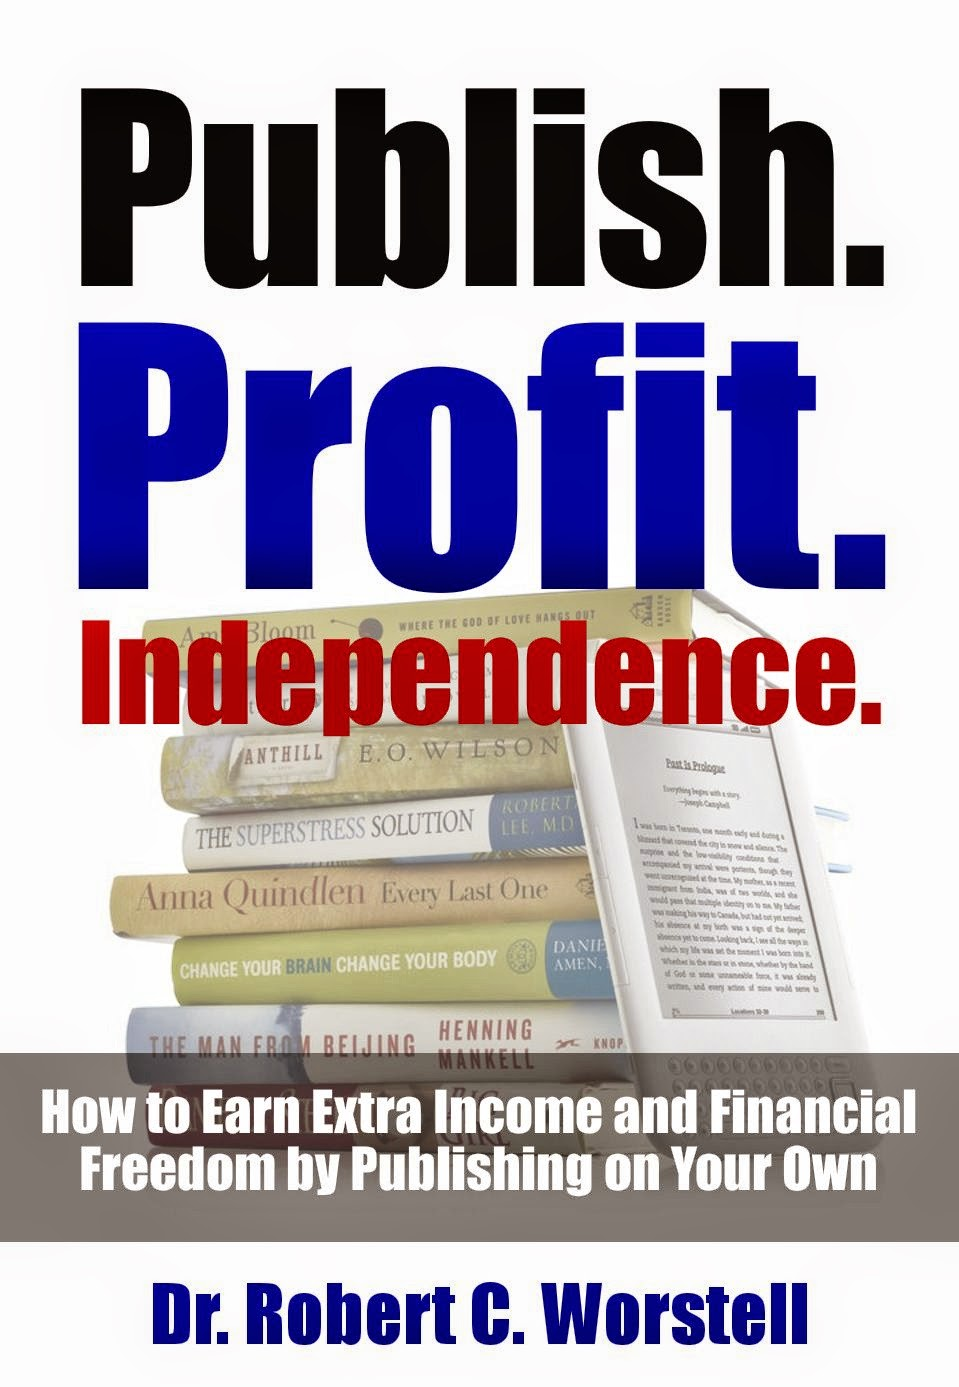 Publish. Profit. Independence. How to Earn Extra Income and Financial Freedom by Publishing on Your Own.